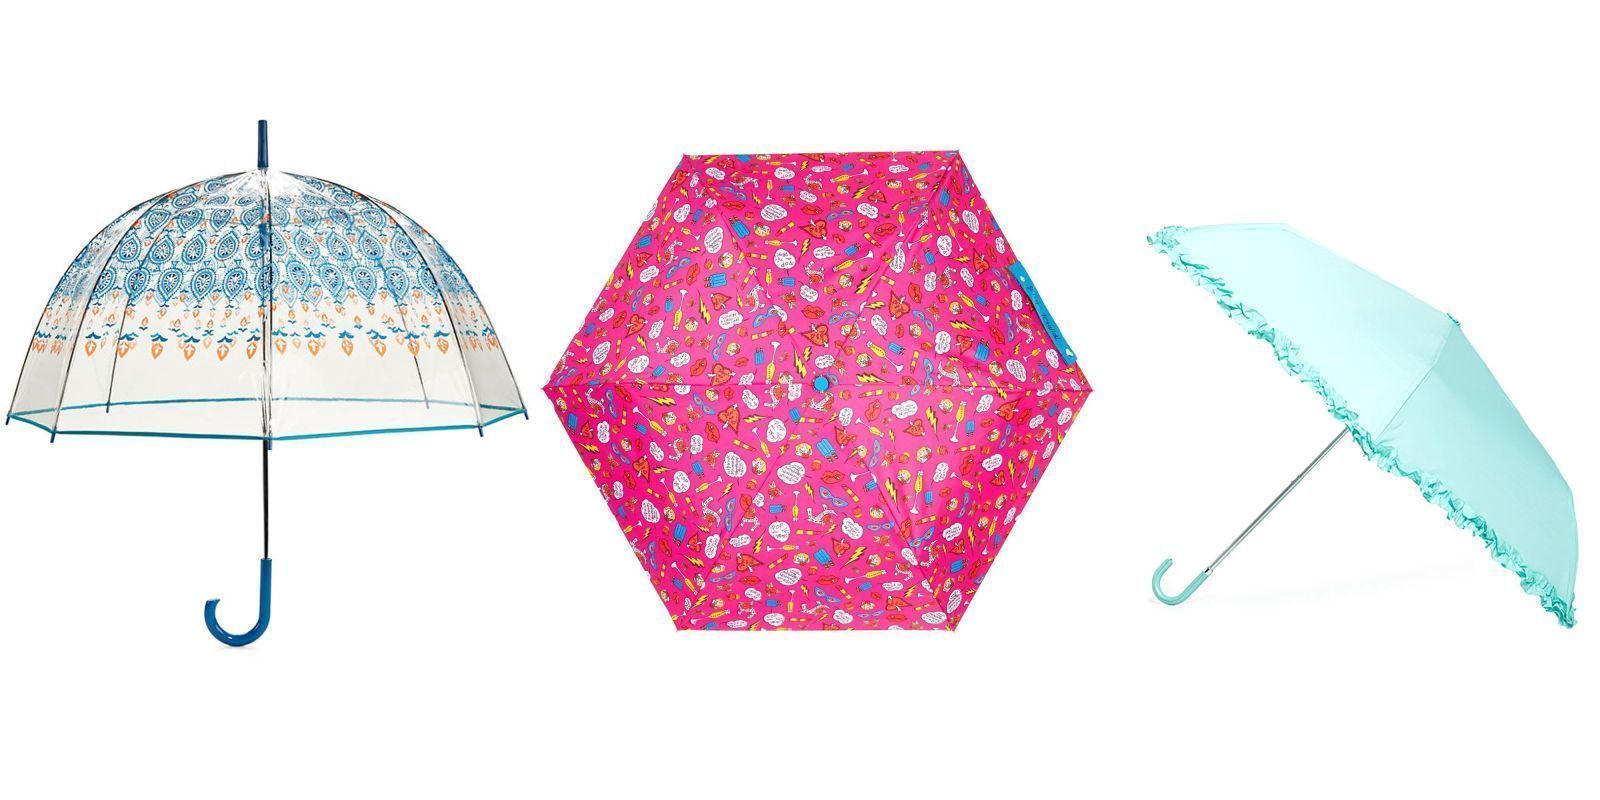 10 Super-Cute Umbrellas That Will Have You Singing in the Rain #cuteumbrellas 10 Super-Cute Umbrellas That Will Have You Singing in the Rain  - Seventeen.com #cuteumbrellas 10 Super-Cute Umbrellas That Will Have You Singing in the Rain #cuteumbrellas 10 Super-Cute Umbrellas That Will Have You Singing in the Rain  - Seventeen.com #cuteumbrellas 10 Super-Cute Umbrellas That Will Have You Singing in the Rain #cuteumbrellas 10 Super-Cute Umbrellas That Will Have You Singing in the Rain  - Seventeen. #cuteumbrellas